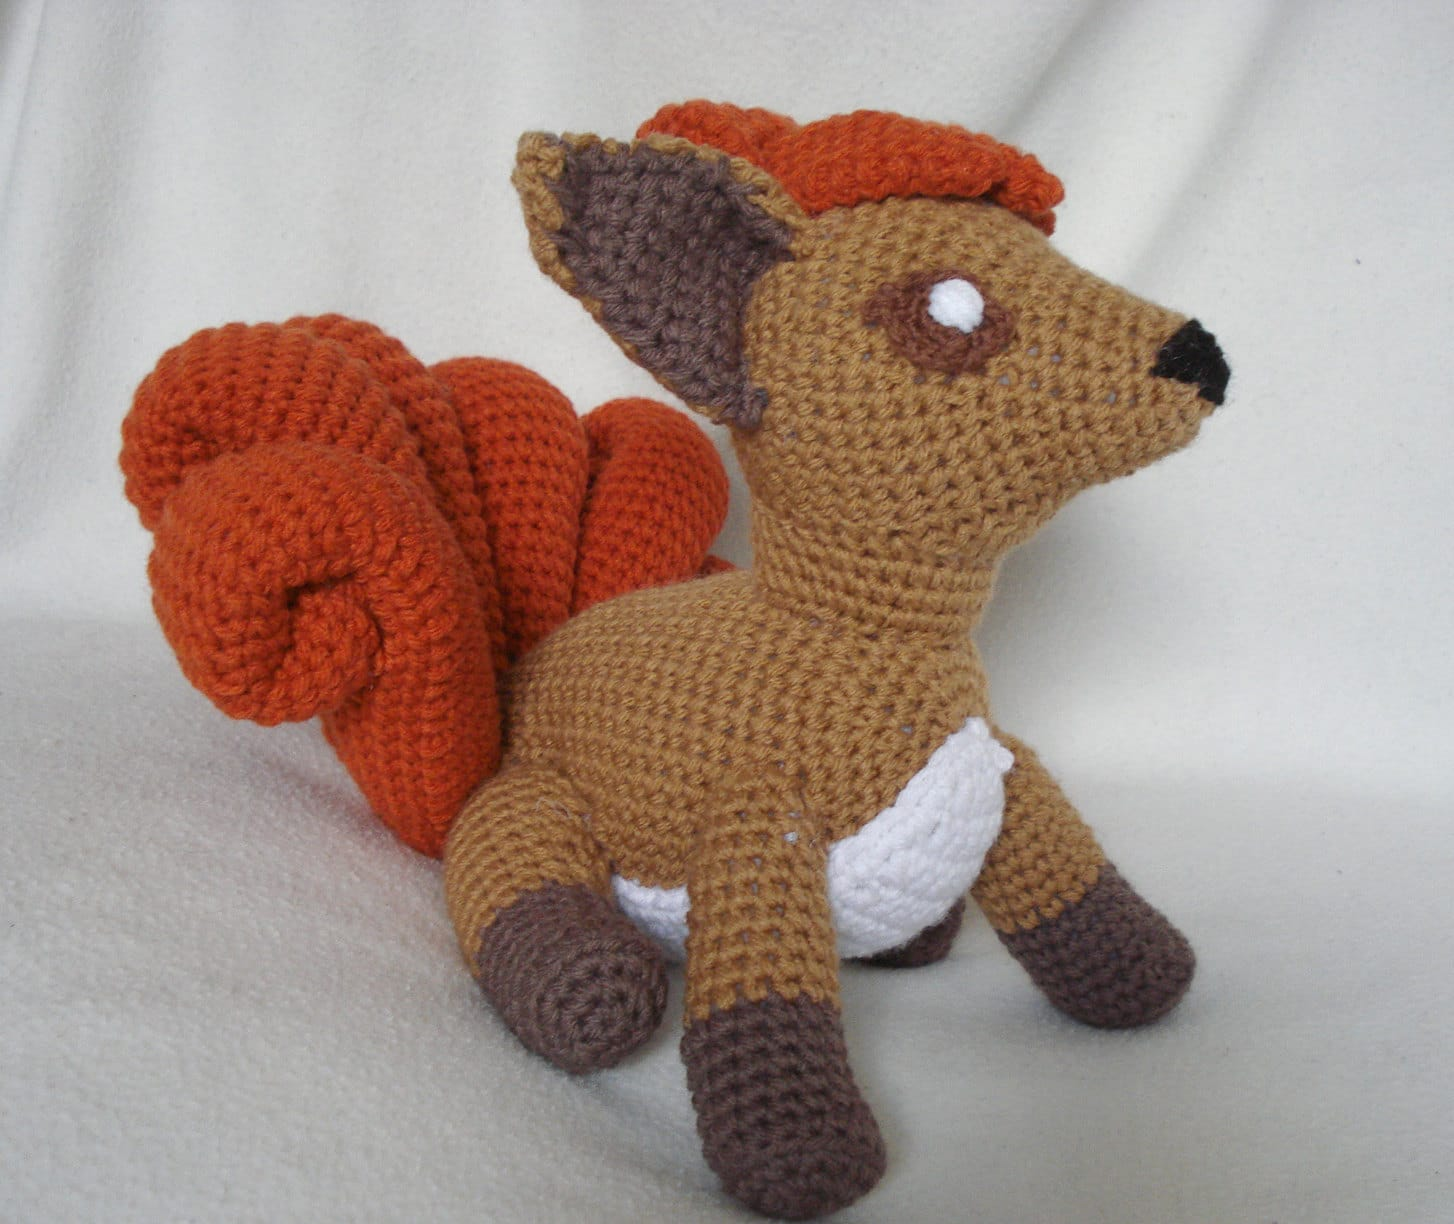 Crochet Patterns For Pokemon : Crocheted Plush Pokemon Characters With Insane Detail